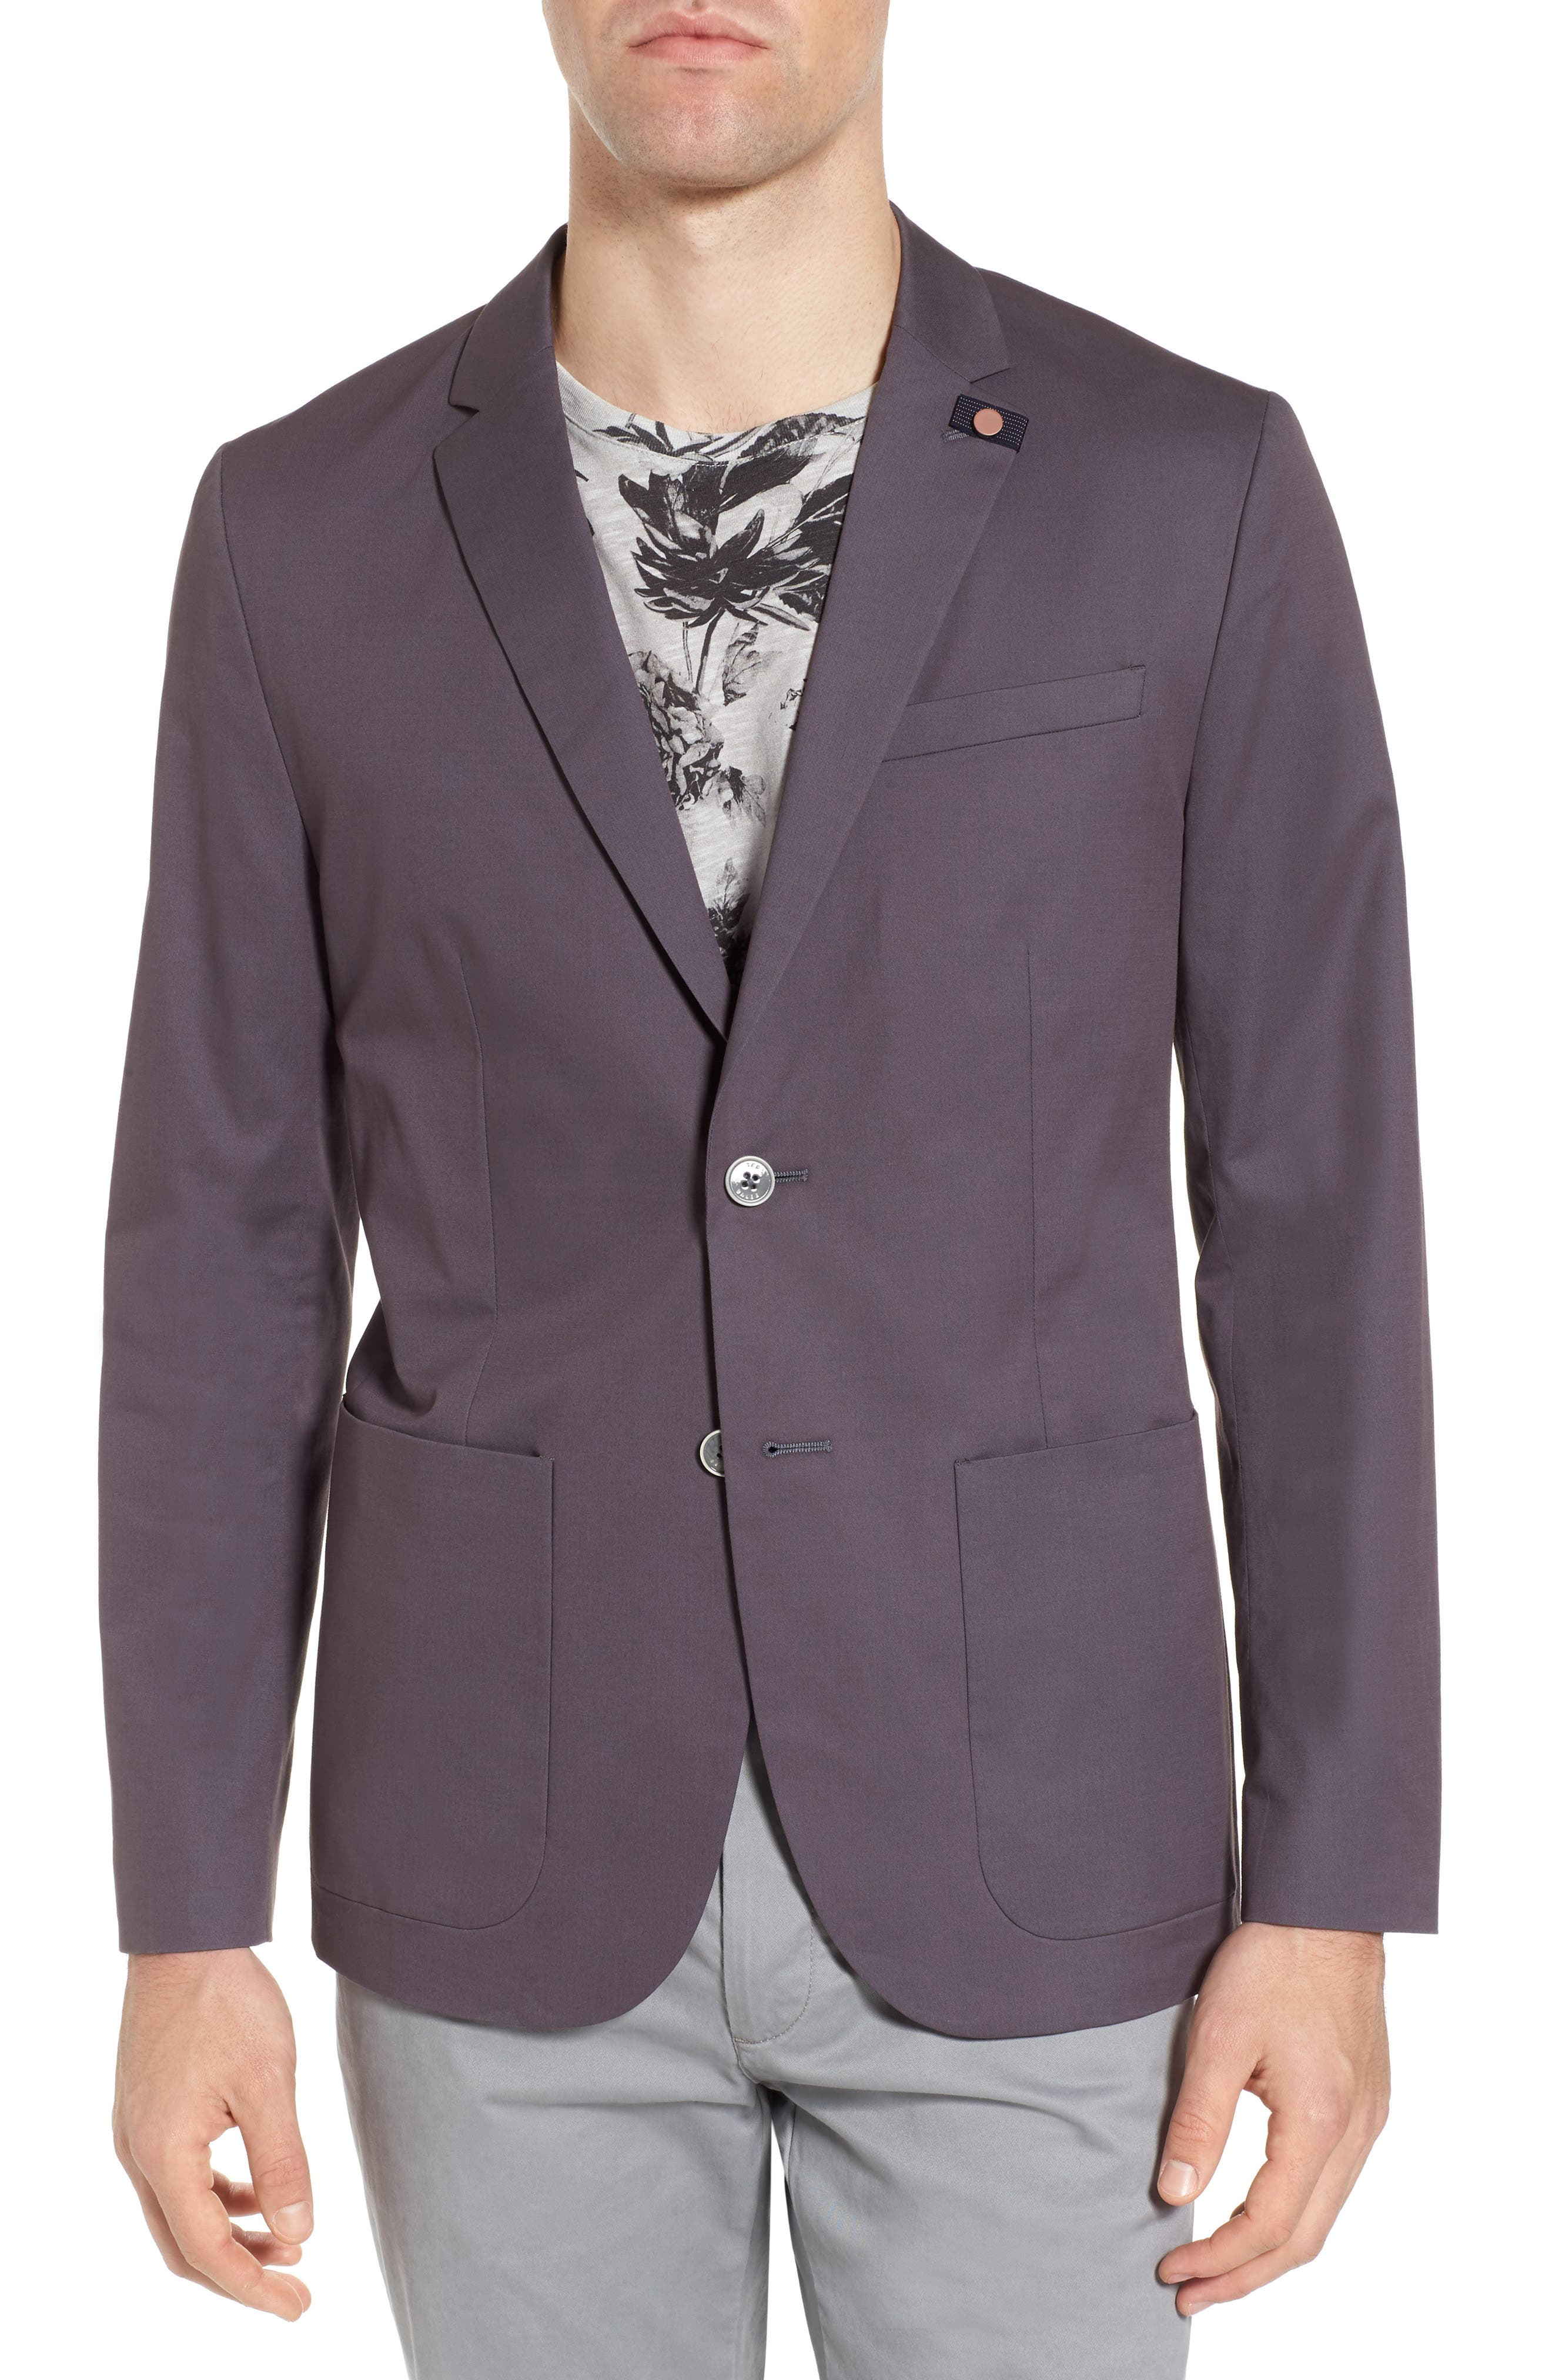 Cliford Trim Fit Stretch Cotton Blazer,                             Main thumbnail 1, color,                             050